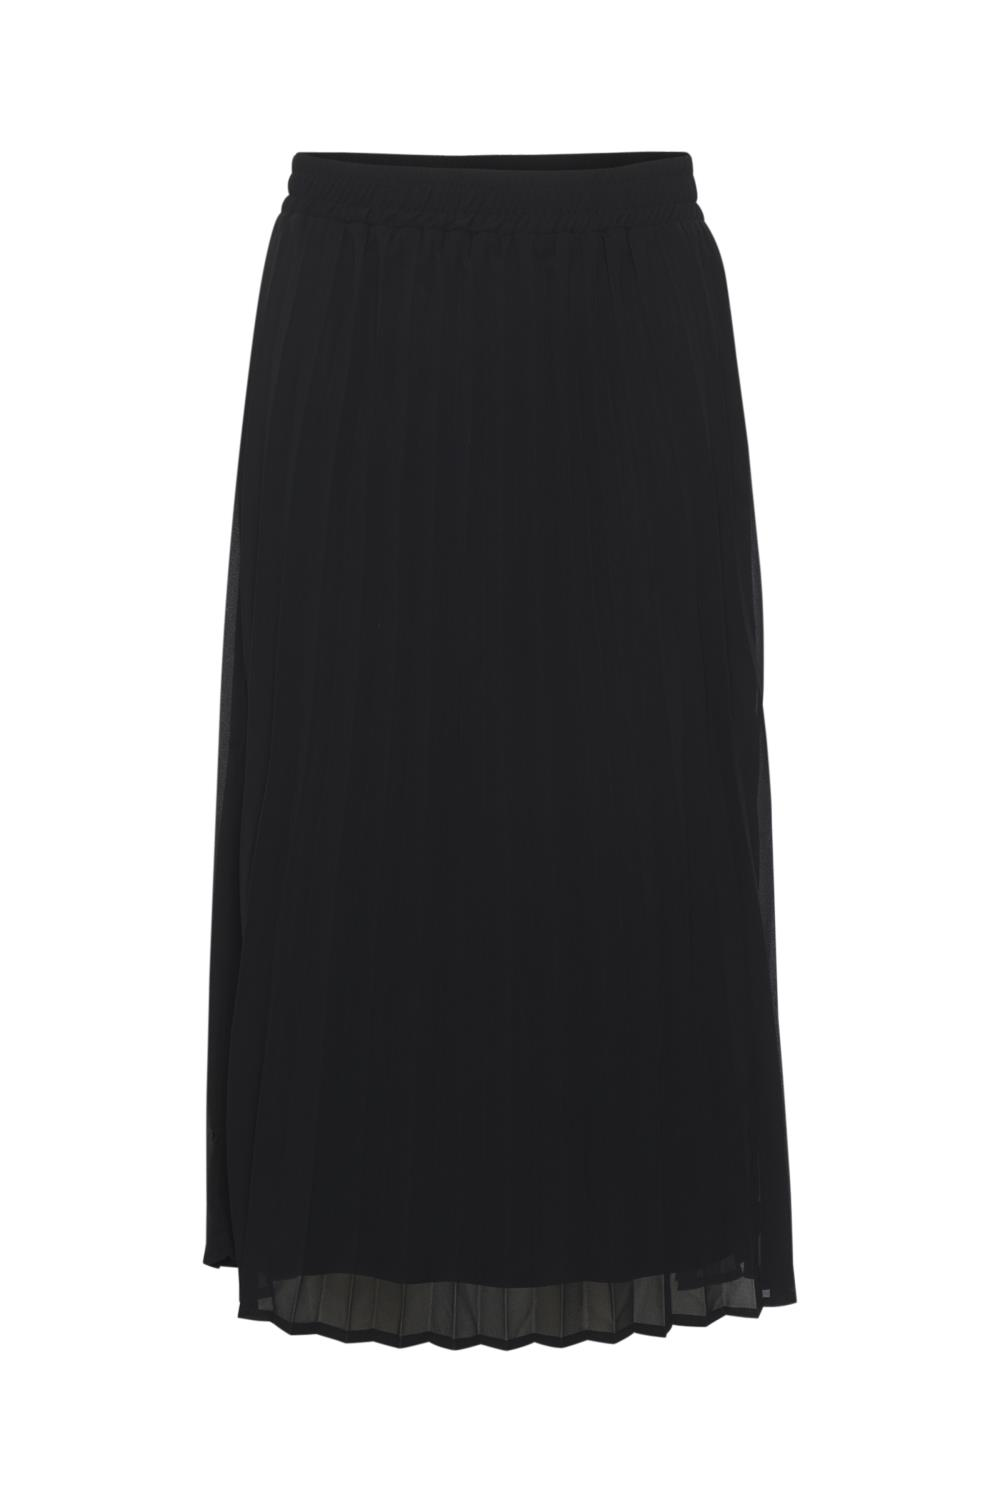 Kaffe Tiola skirt, black deep